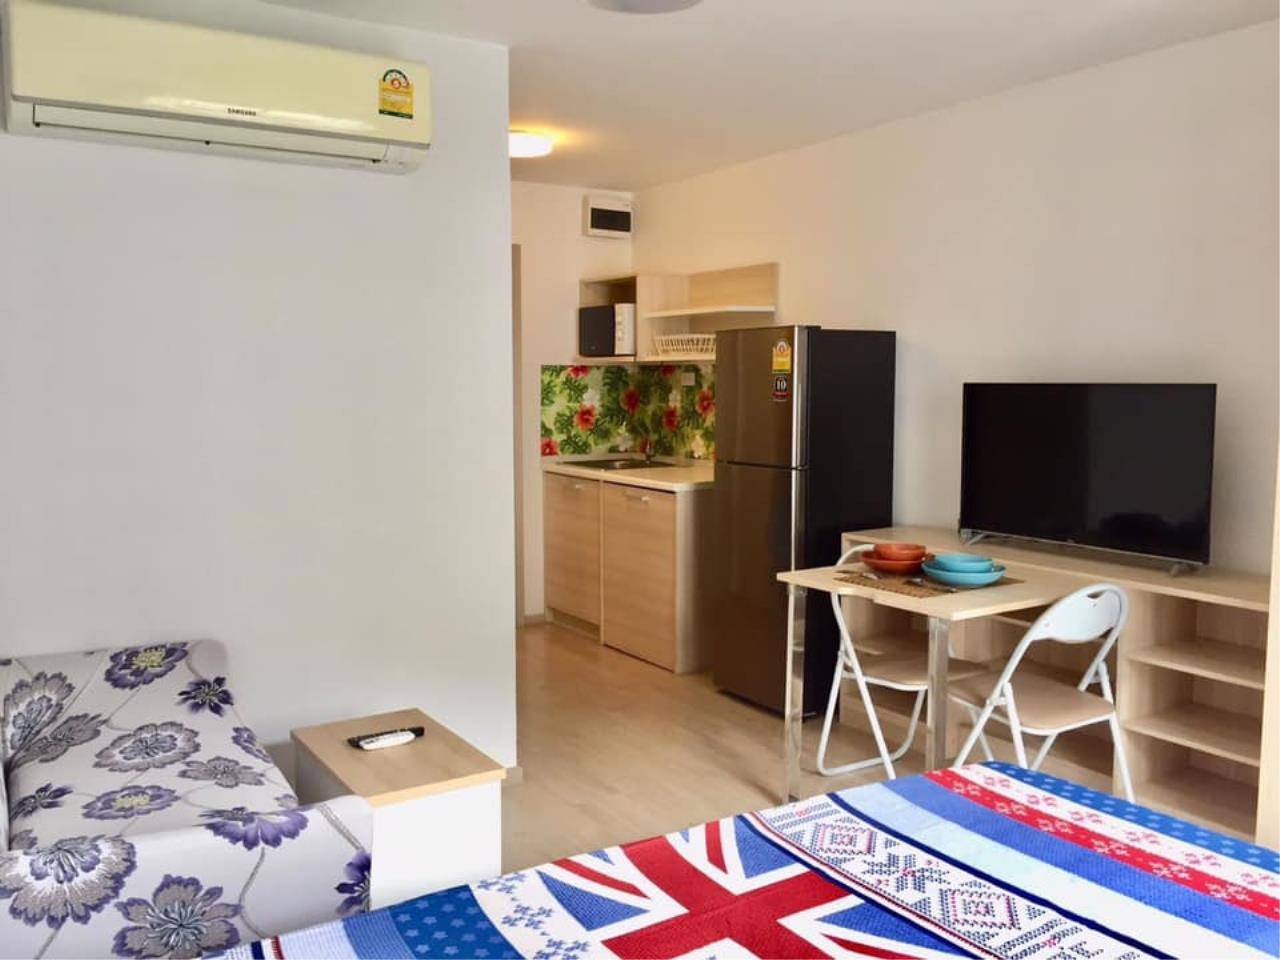 Agent Thawanrat Agency's Condo for rental ELIO DEL RAY Near BTS.Udom Suk 1 bedroom,1 bathroom. size 24 sqm.Floor 3 rd. fully furnished Ready to move in 3